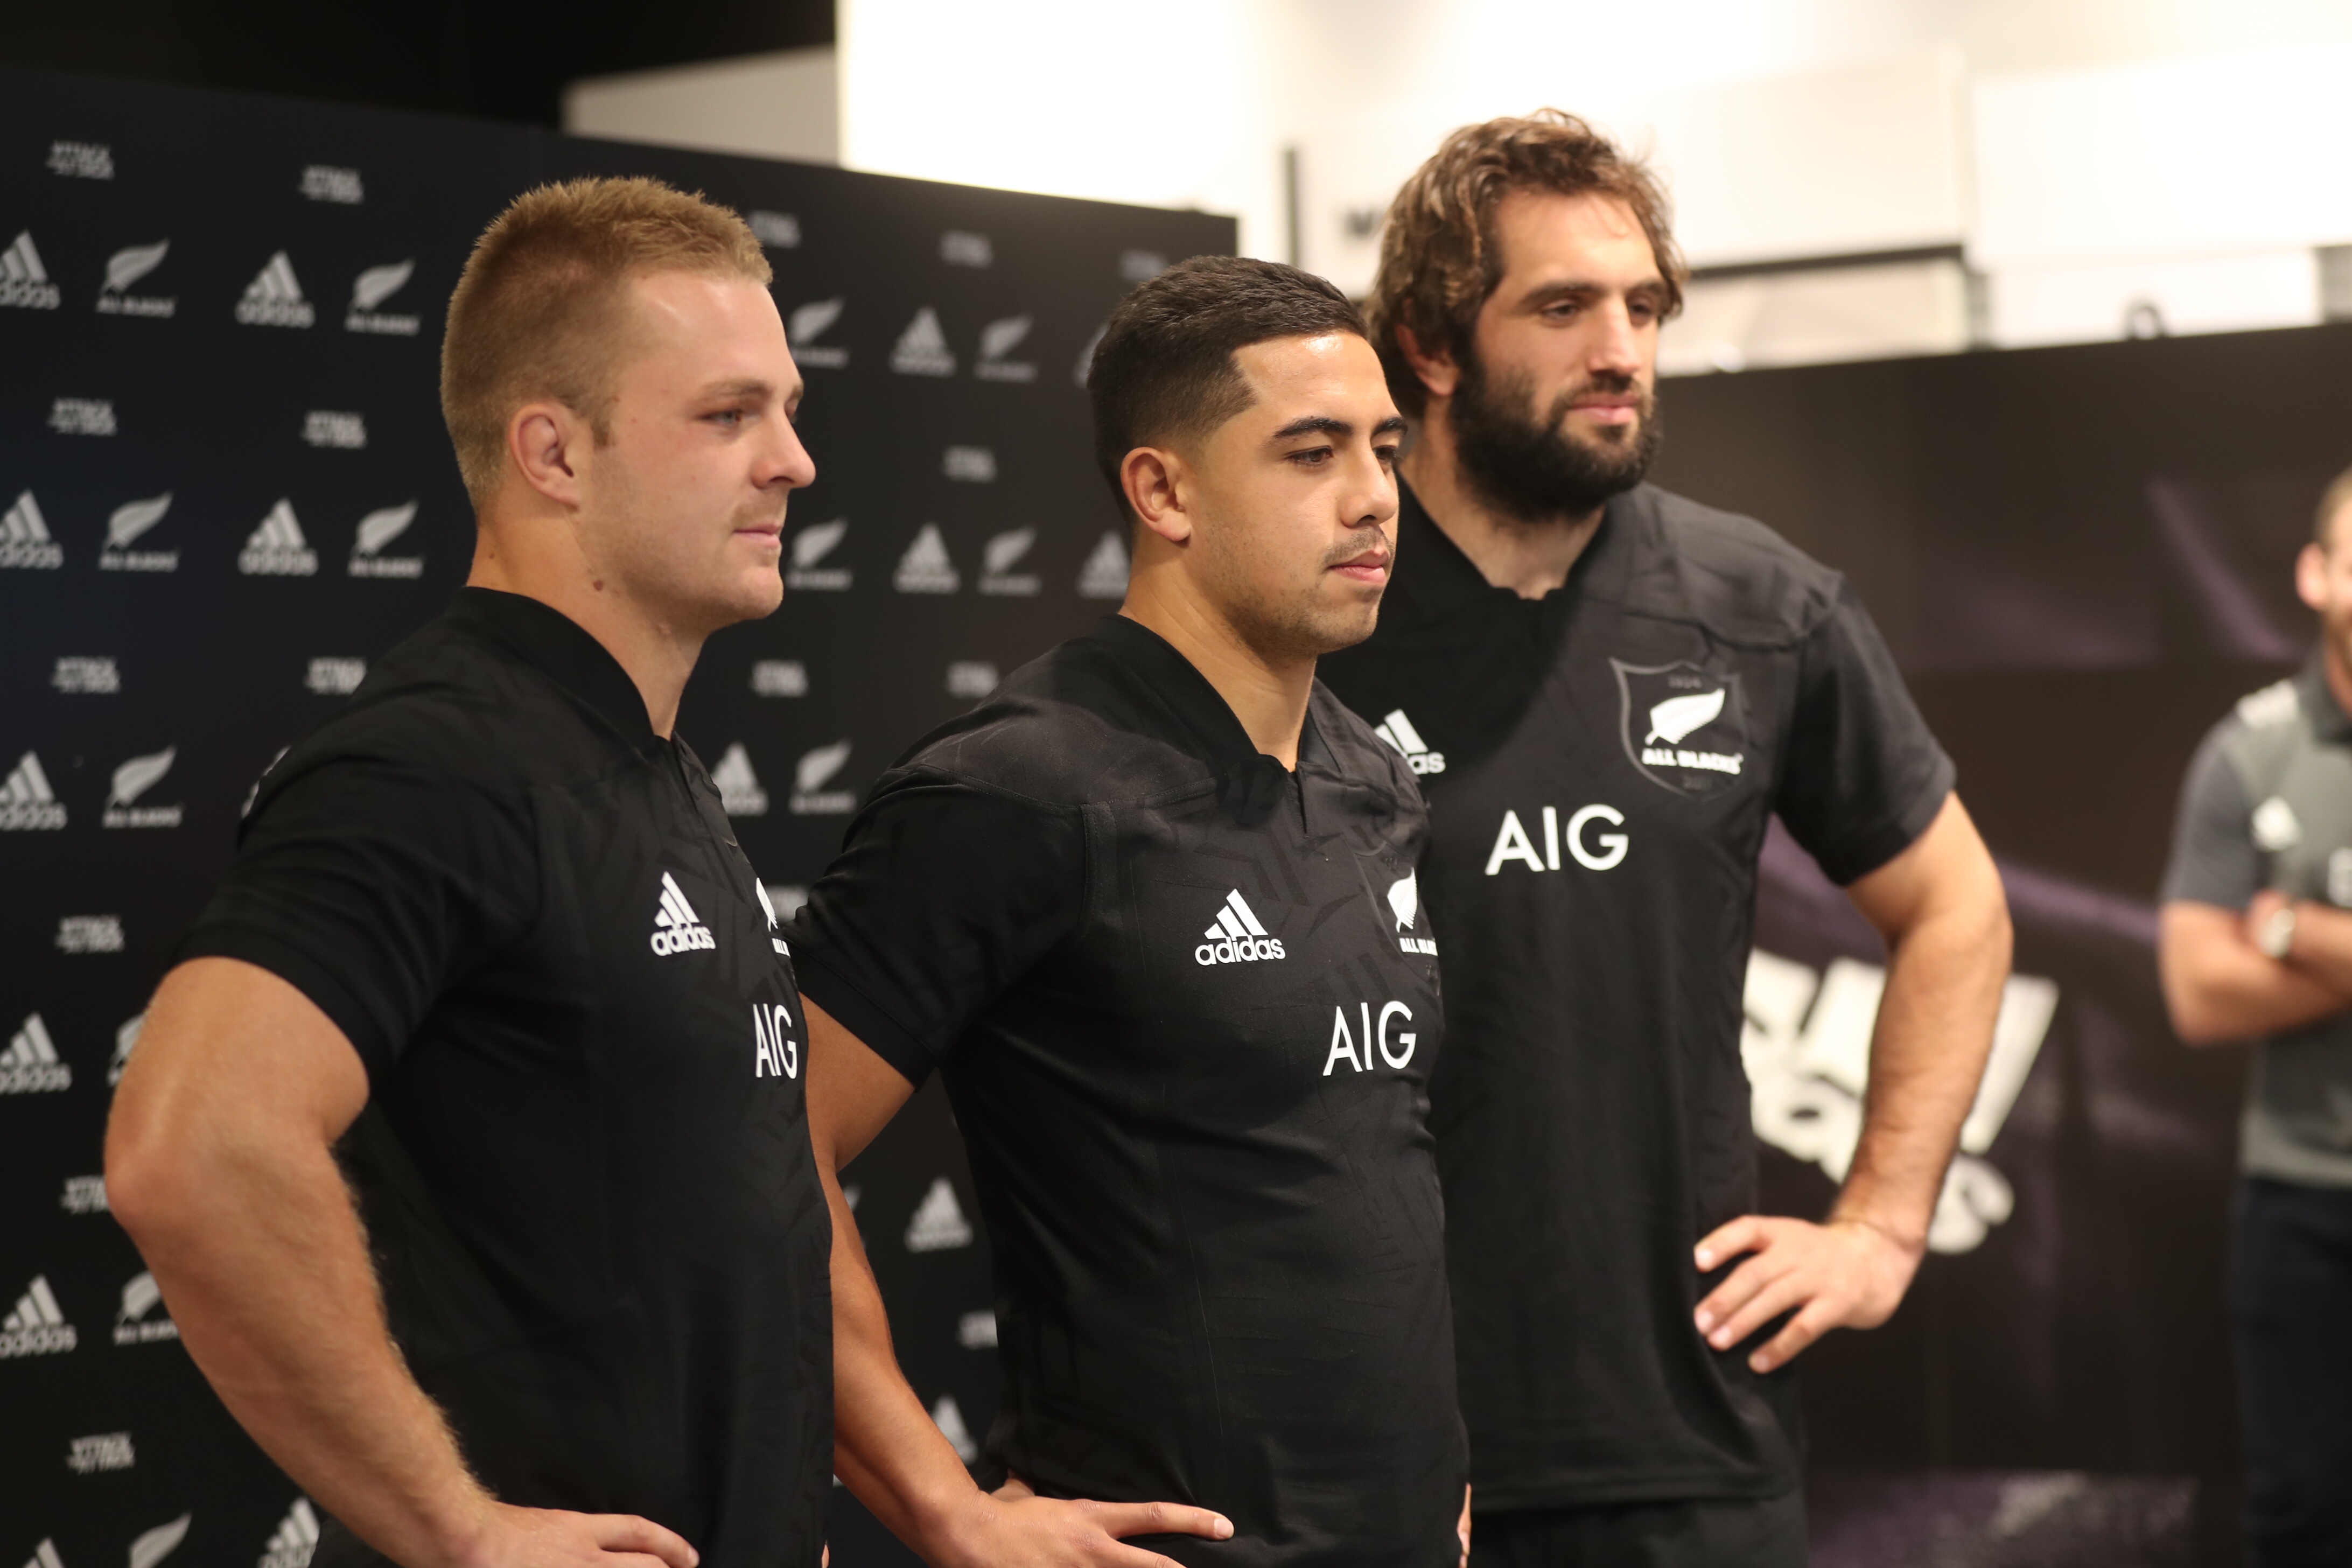 83fb57c3874 All Blacks reveal new $150 jersey for British and Irish Lions series ...